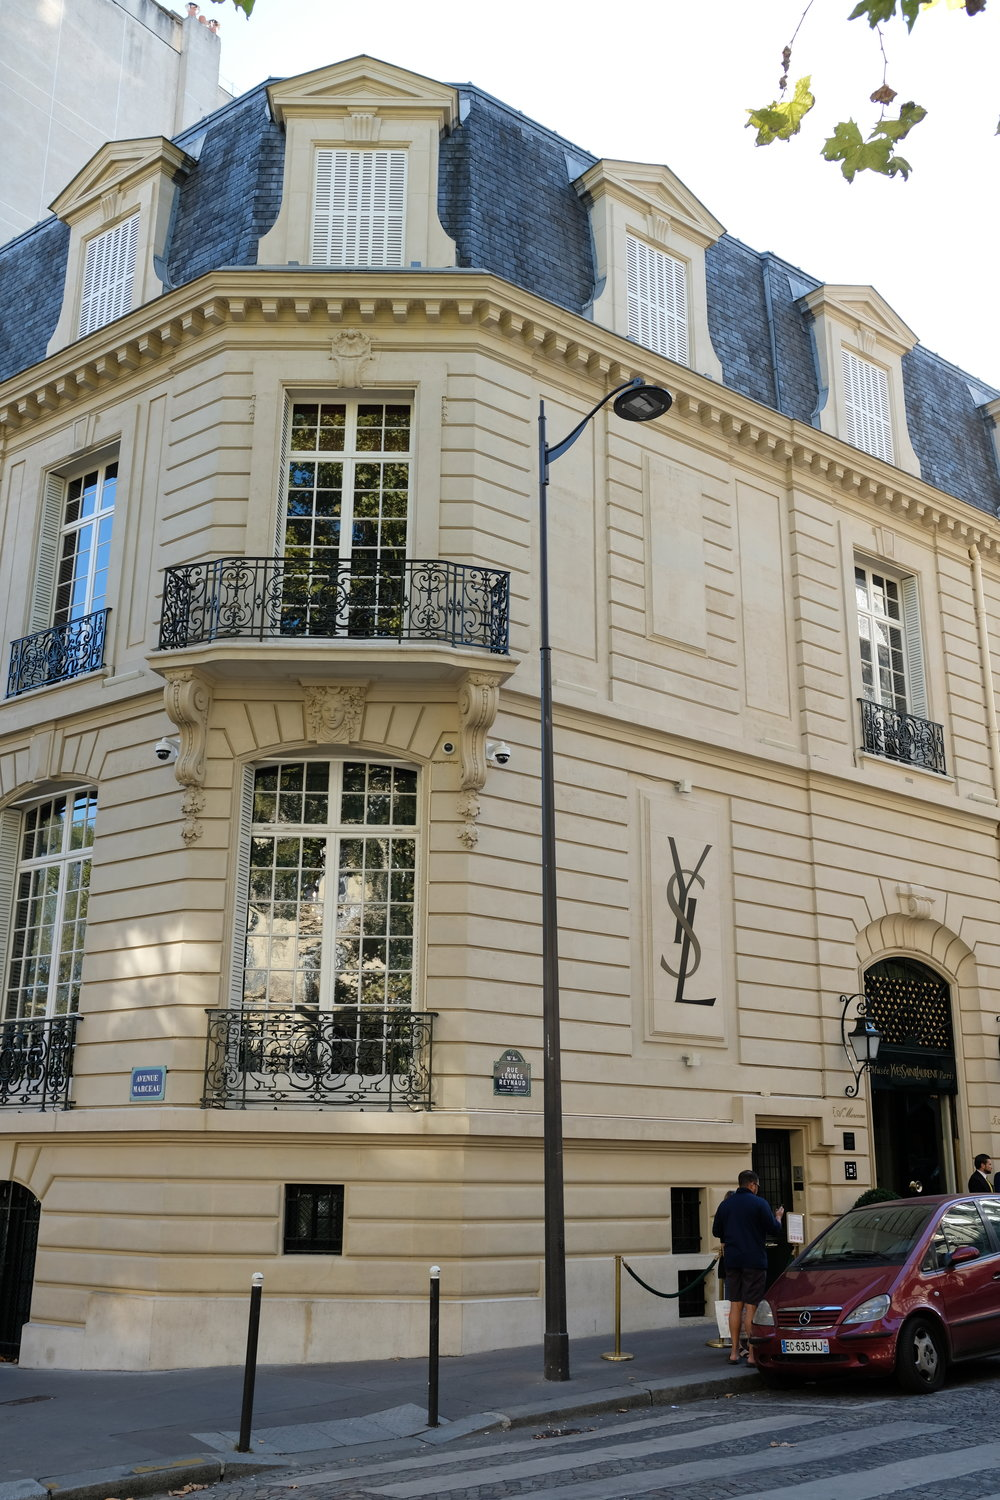 The original YSL haute couture house, now home to the YSL Musee, located at 5 avenue Marceau.